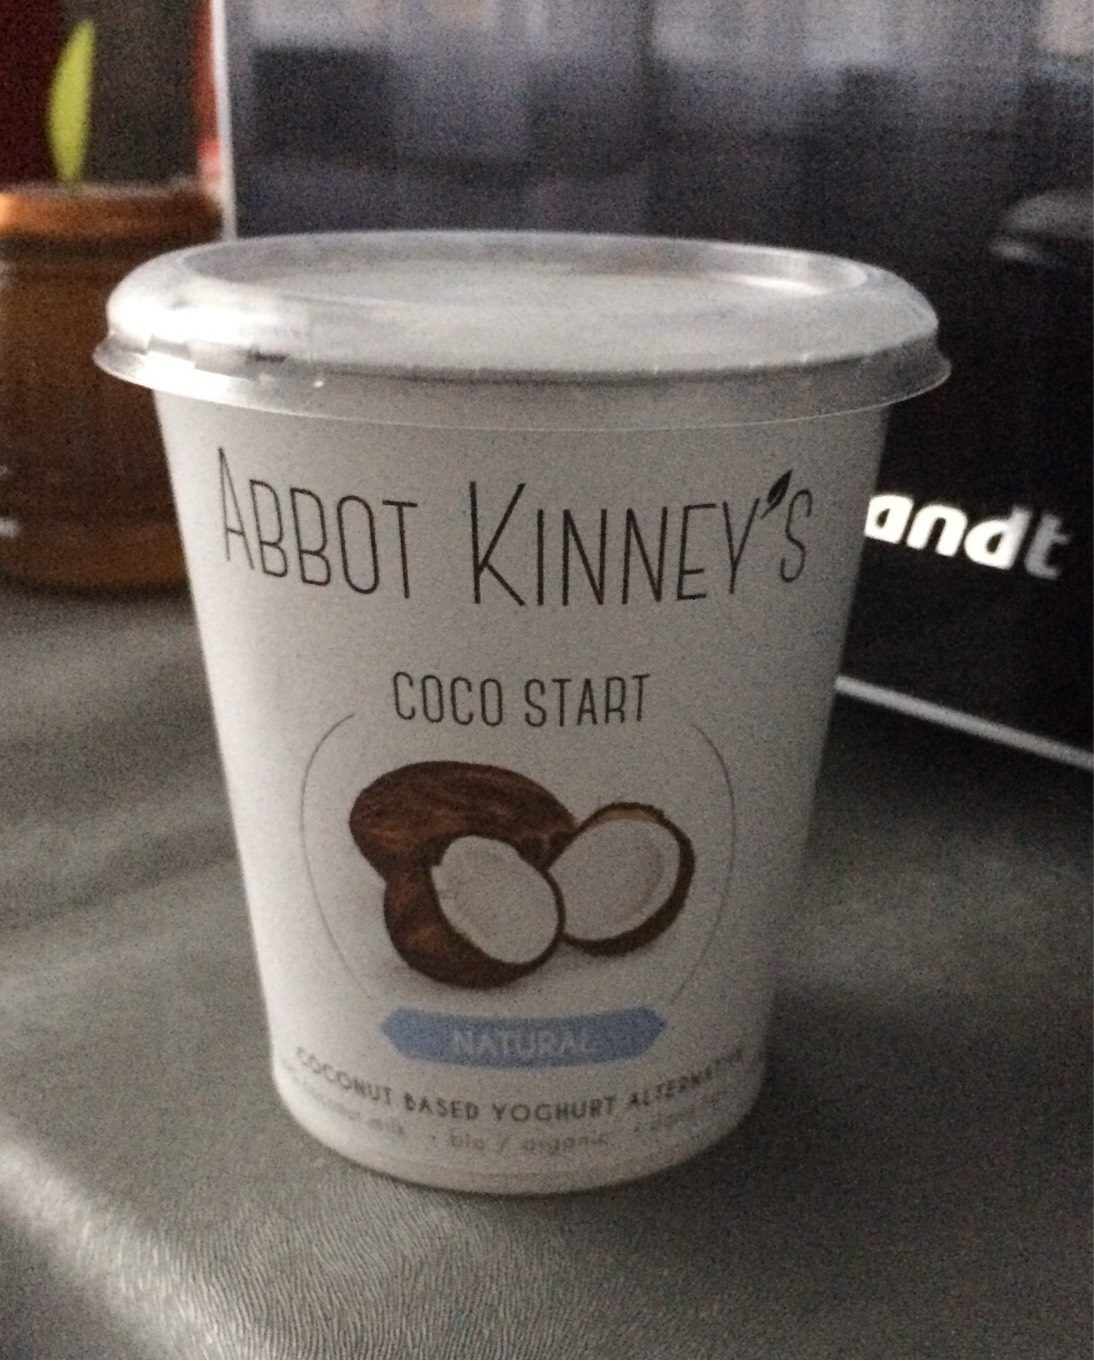 Abbot Kinney's Coco Start, Natural - Product